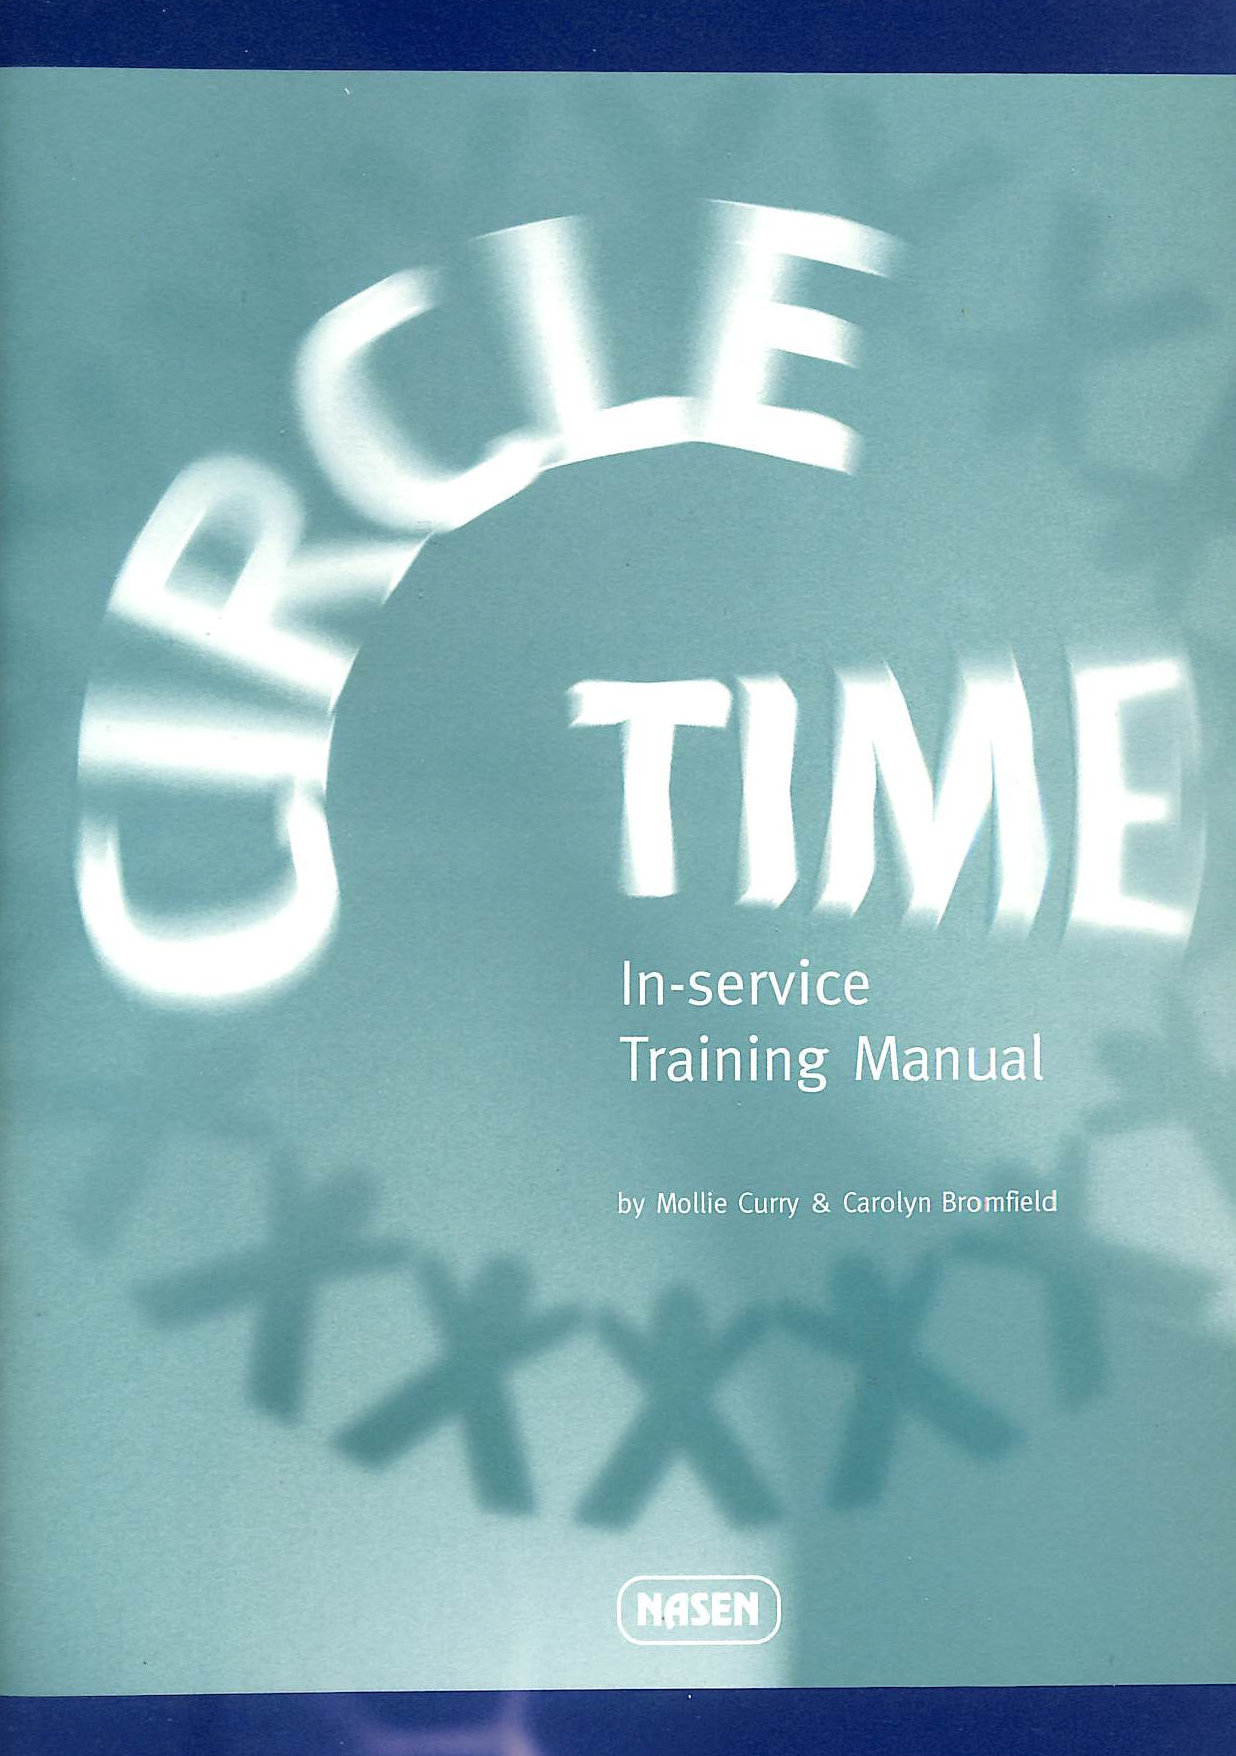 Image for CIRCLE TIME INSERVICE TRAIN MAN (Nasen Publication)